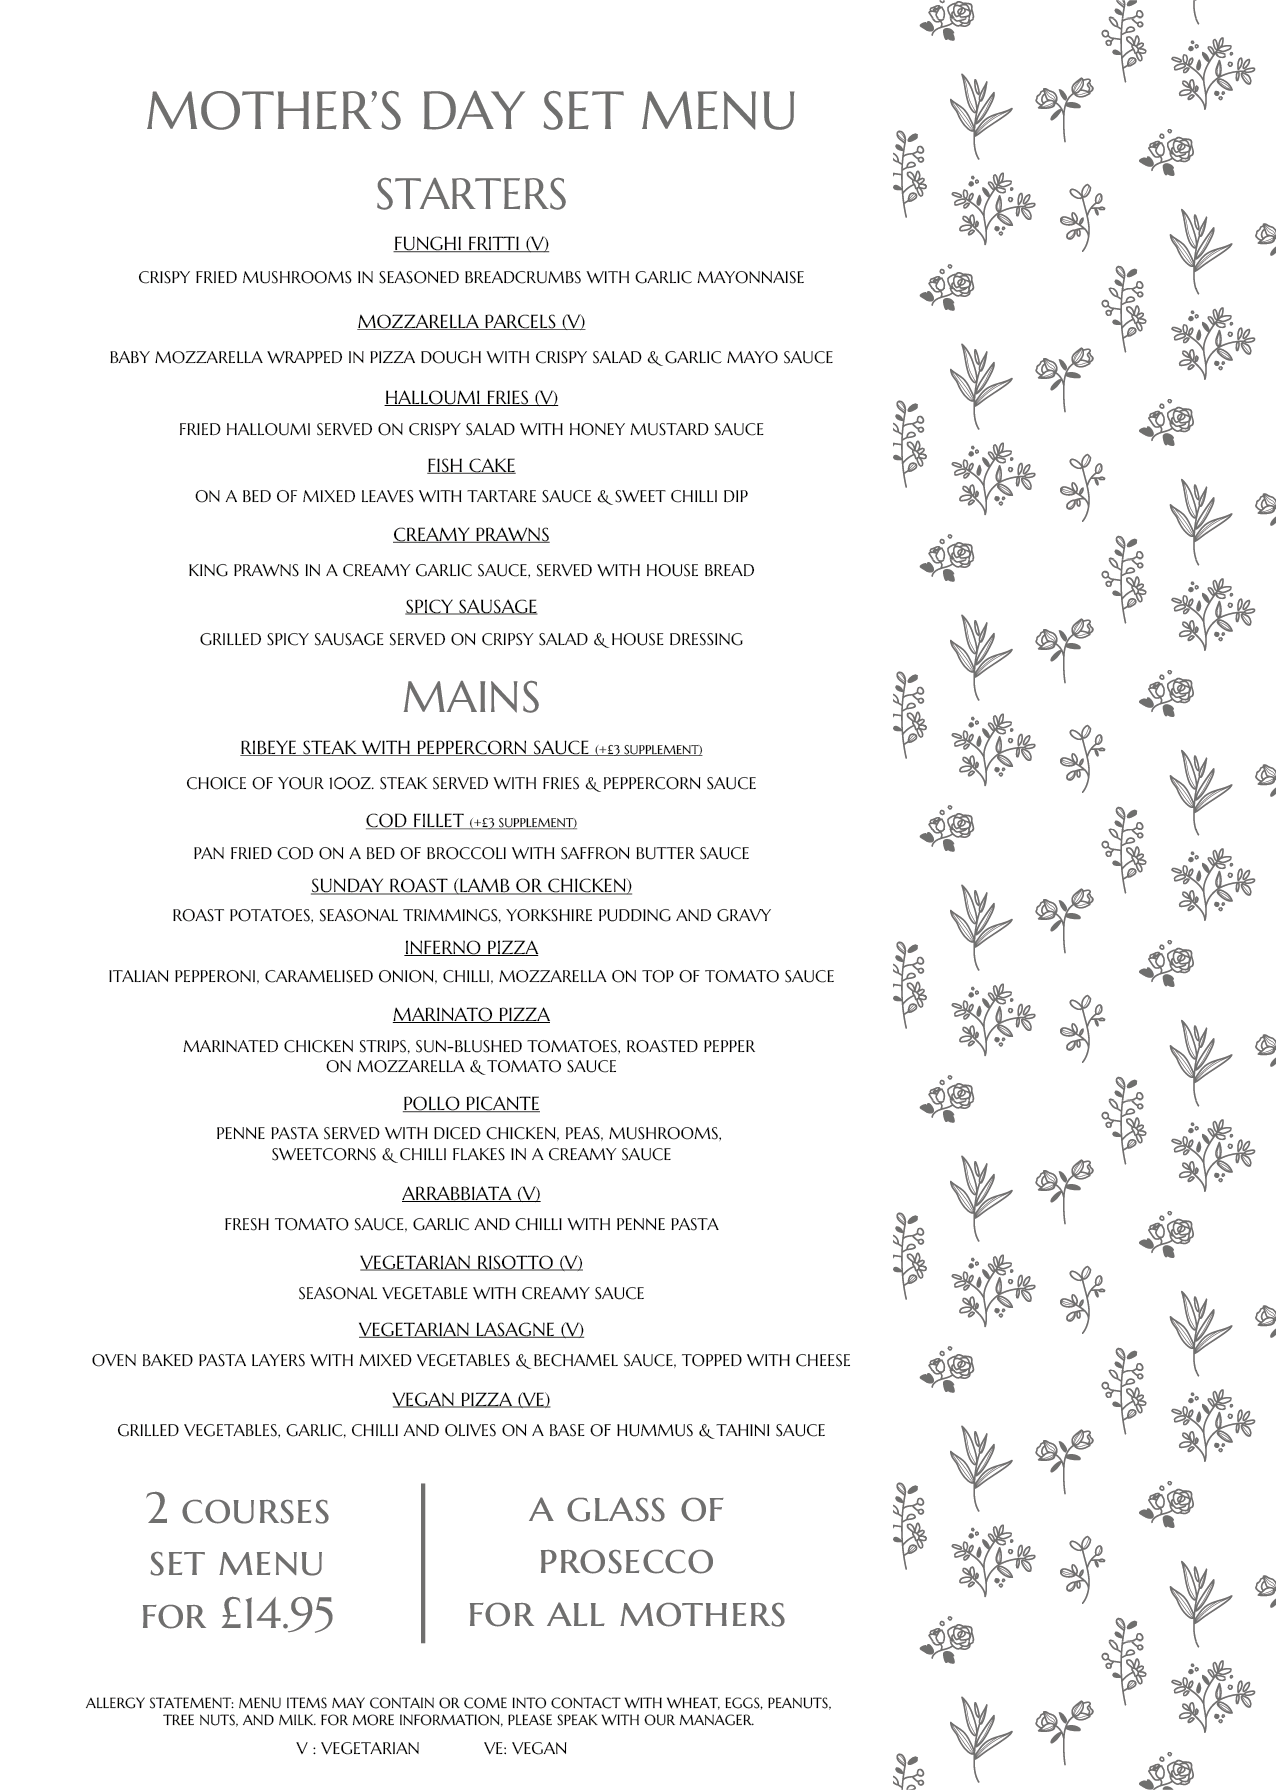 mothers day menu al dente restaurant lark lane liverpool 2020